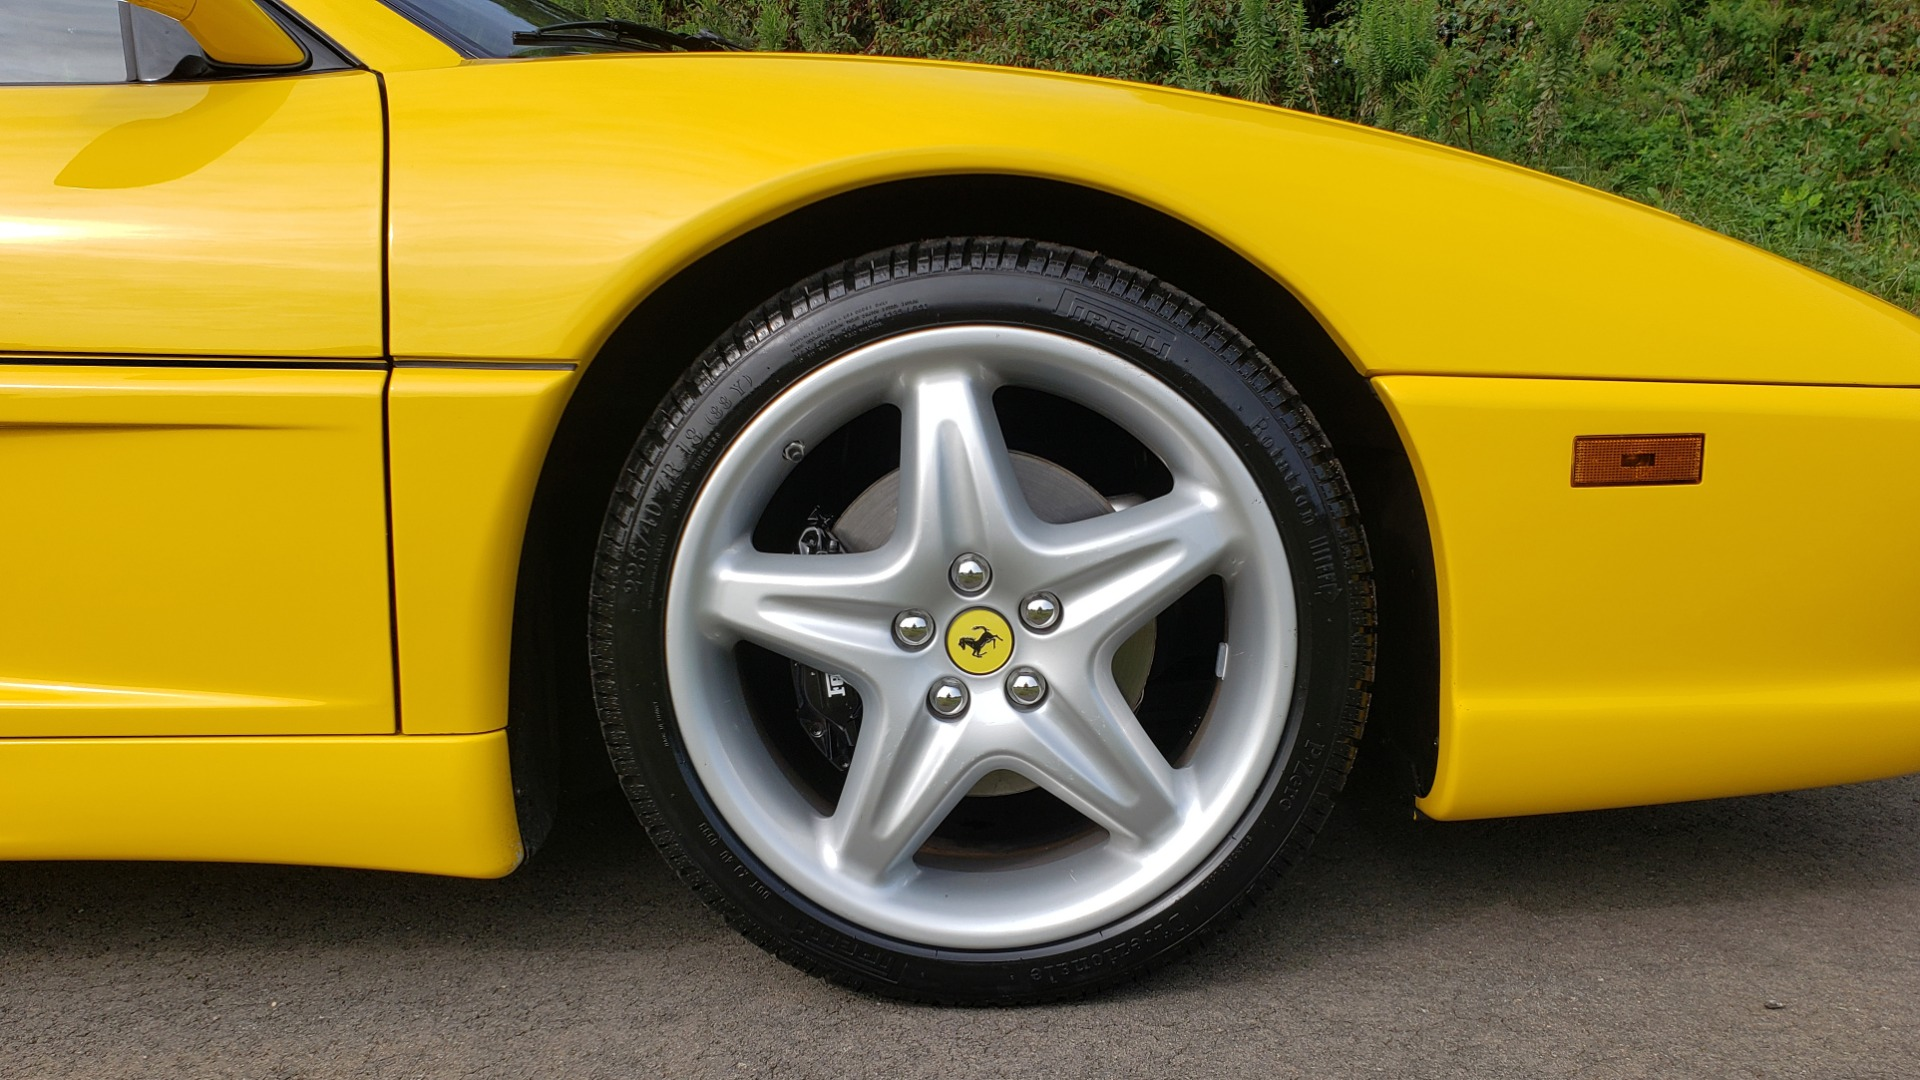 Used 1996 Ferrari F355 SPIDER / GATED 6-SPEED MANUAL / LOW MILES / NEW TIRES for sale $95,999 at Formula Imports in Charlotte NC 28227 75